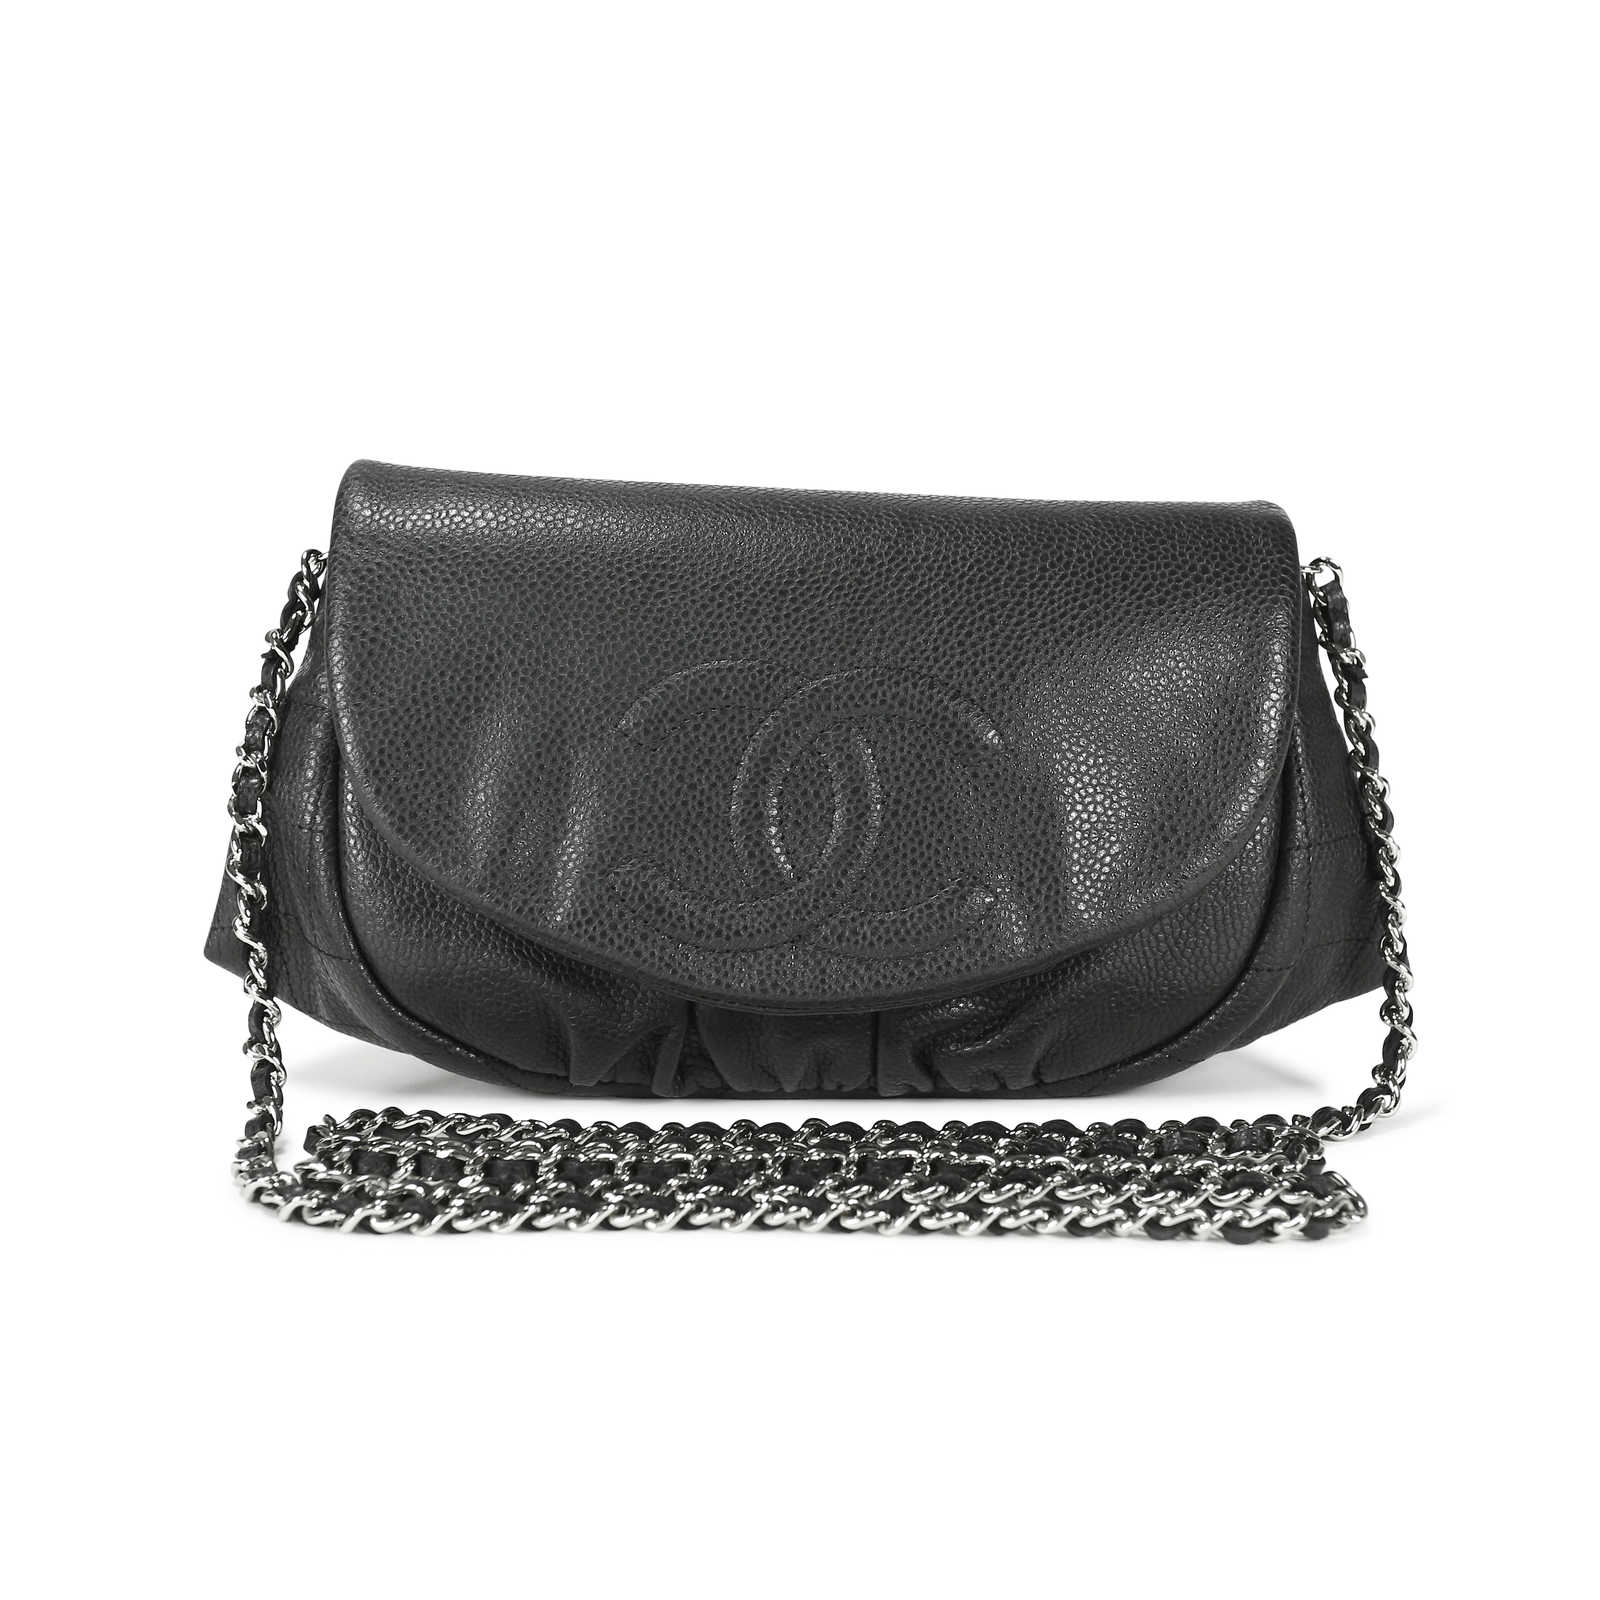 b0e9dcc59dbe52 Authentic Second Hand Chanel Half Moon Wallet on Chain Bag (PSS-145-00018  ...